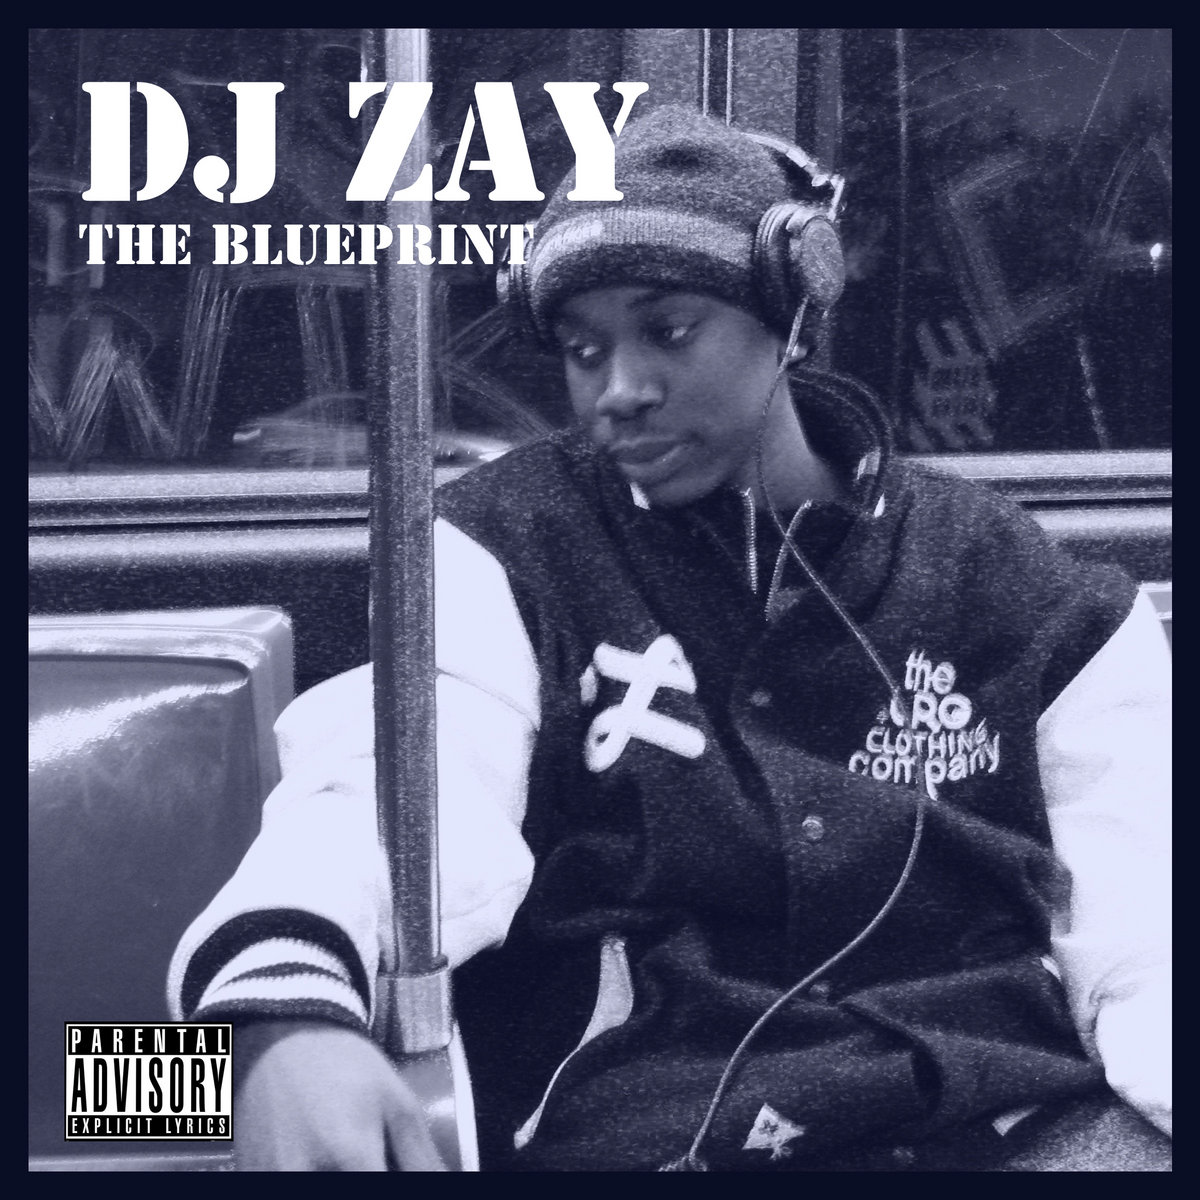 The blueprint a fair alternative dj zay by dj zay malvernweather Image collections